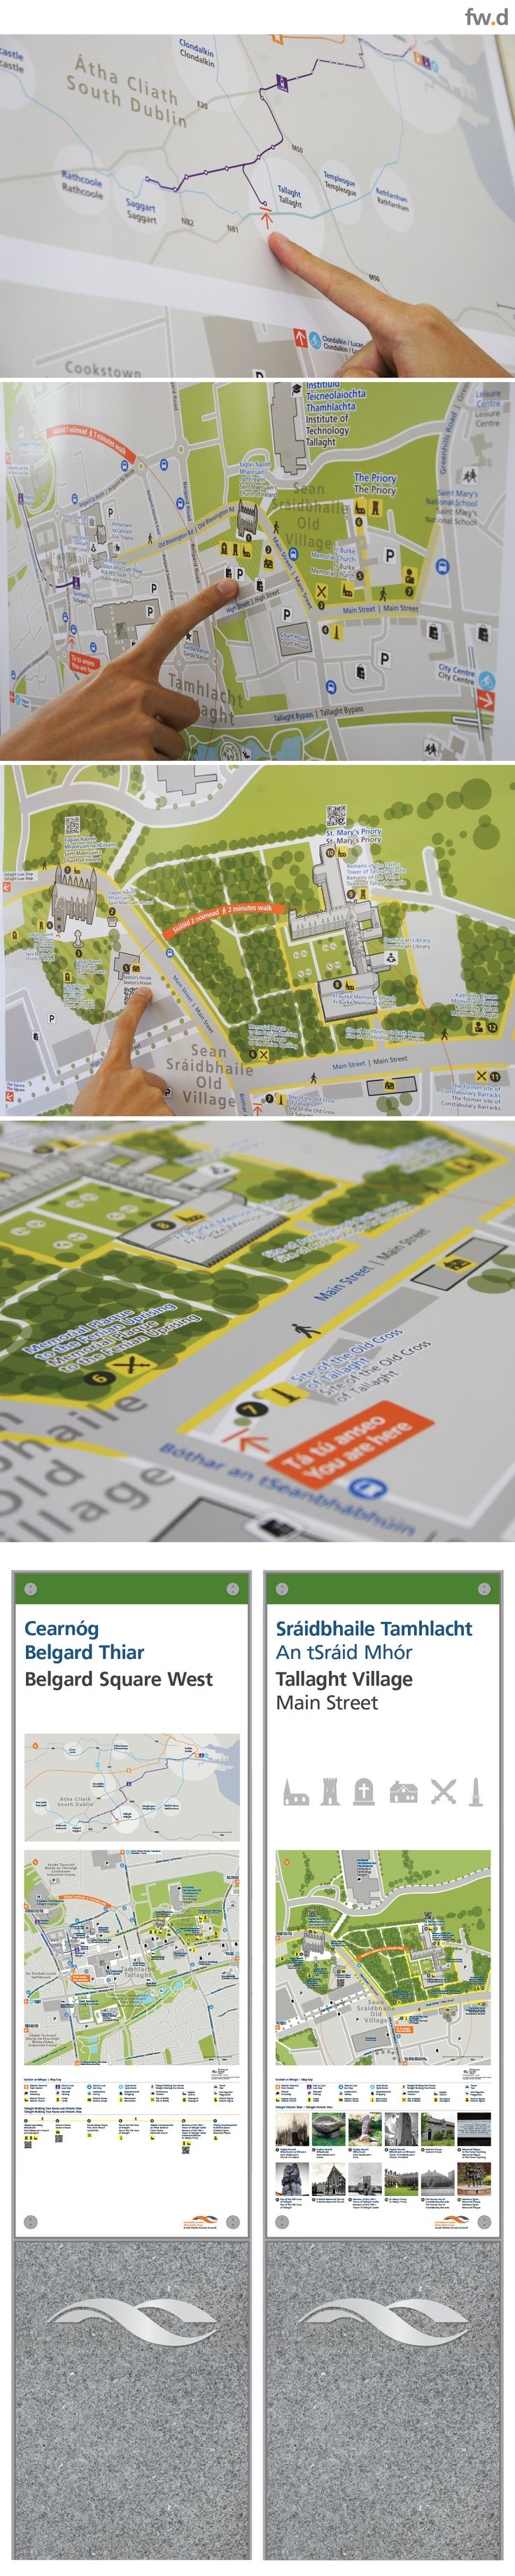 Seamless integration of heritage destination information within pedestrian wayfinding map designs, by fwdesign. Client: South Dublin County Council.